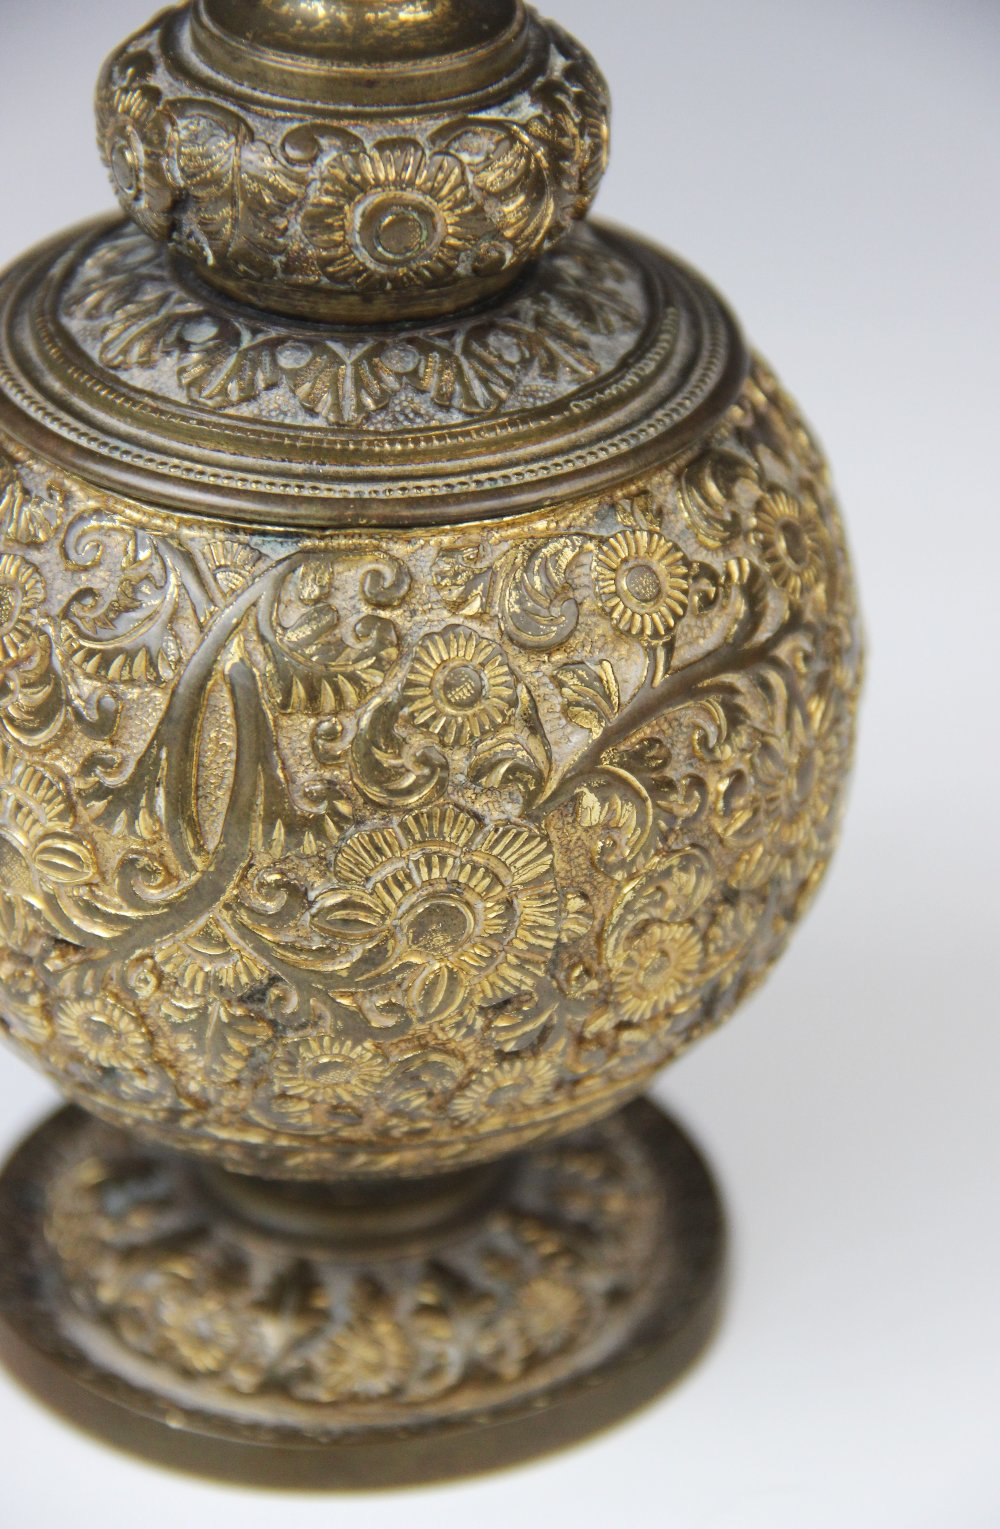 An Indian brass incense burner or censer, probably early or mid 20th century, of globe and - Image 2 of 4